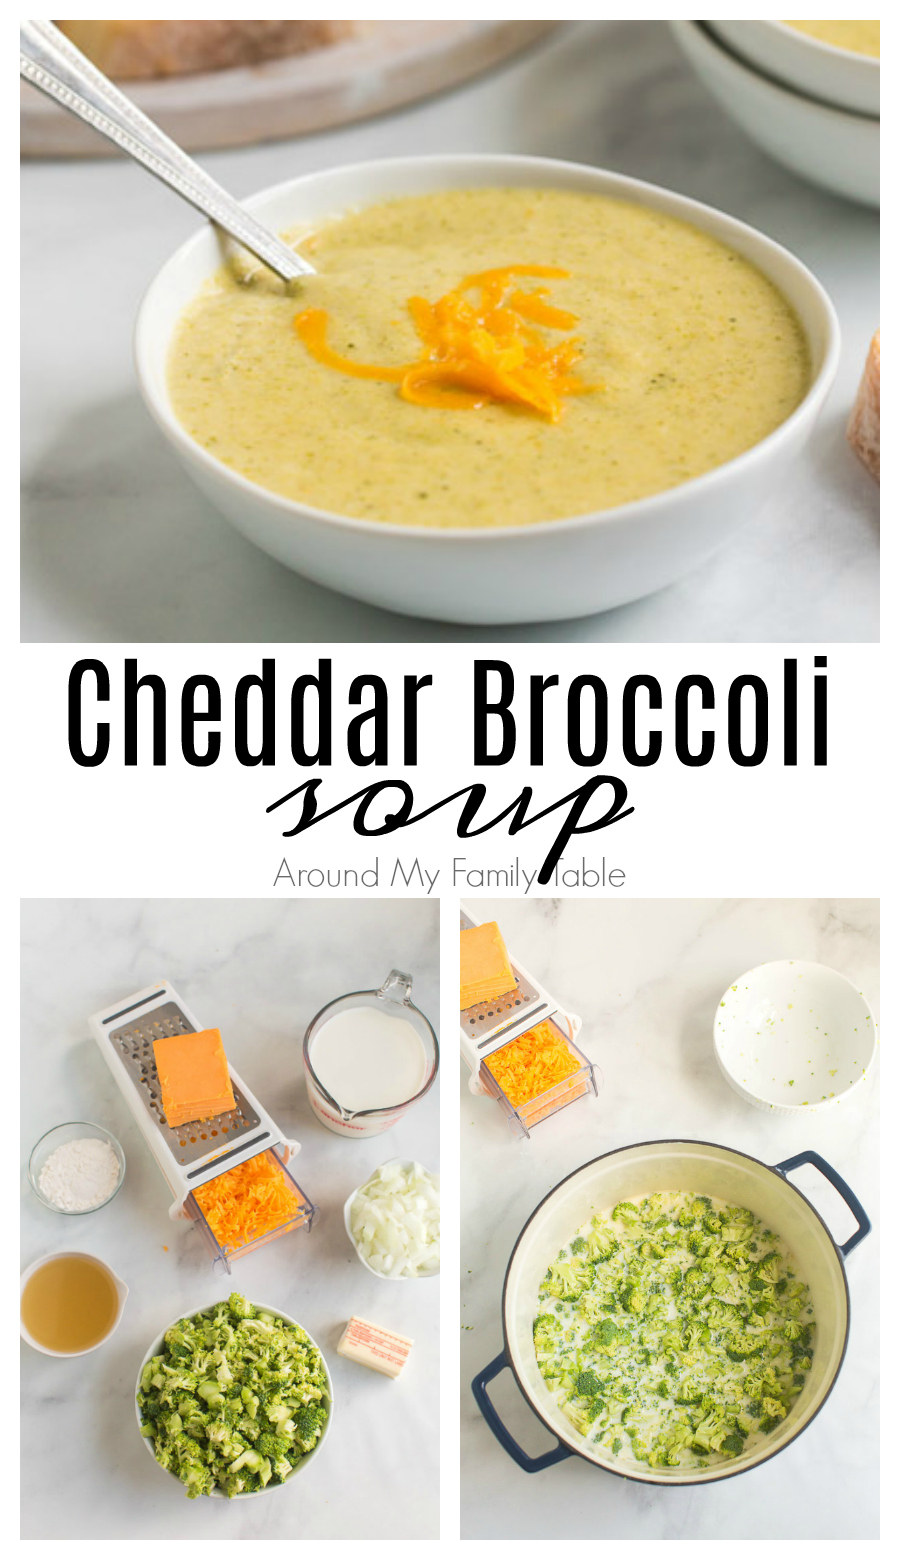 This cheddar broccoli soup recipe creates creamy, cheesy comfort food from scratch in 45 minutes! Make this recipe for lunch or dinner. #panerasoup #broccolicheesesoup #copycatrecipe #soup via @slingmama